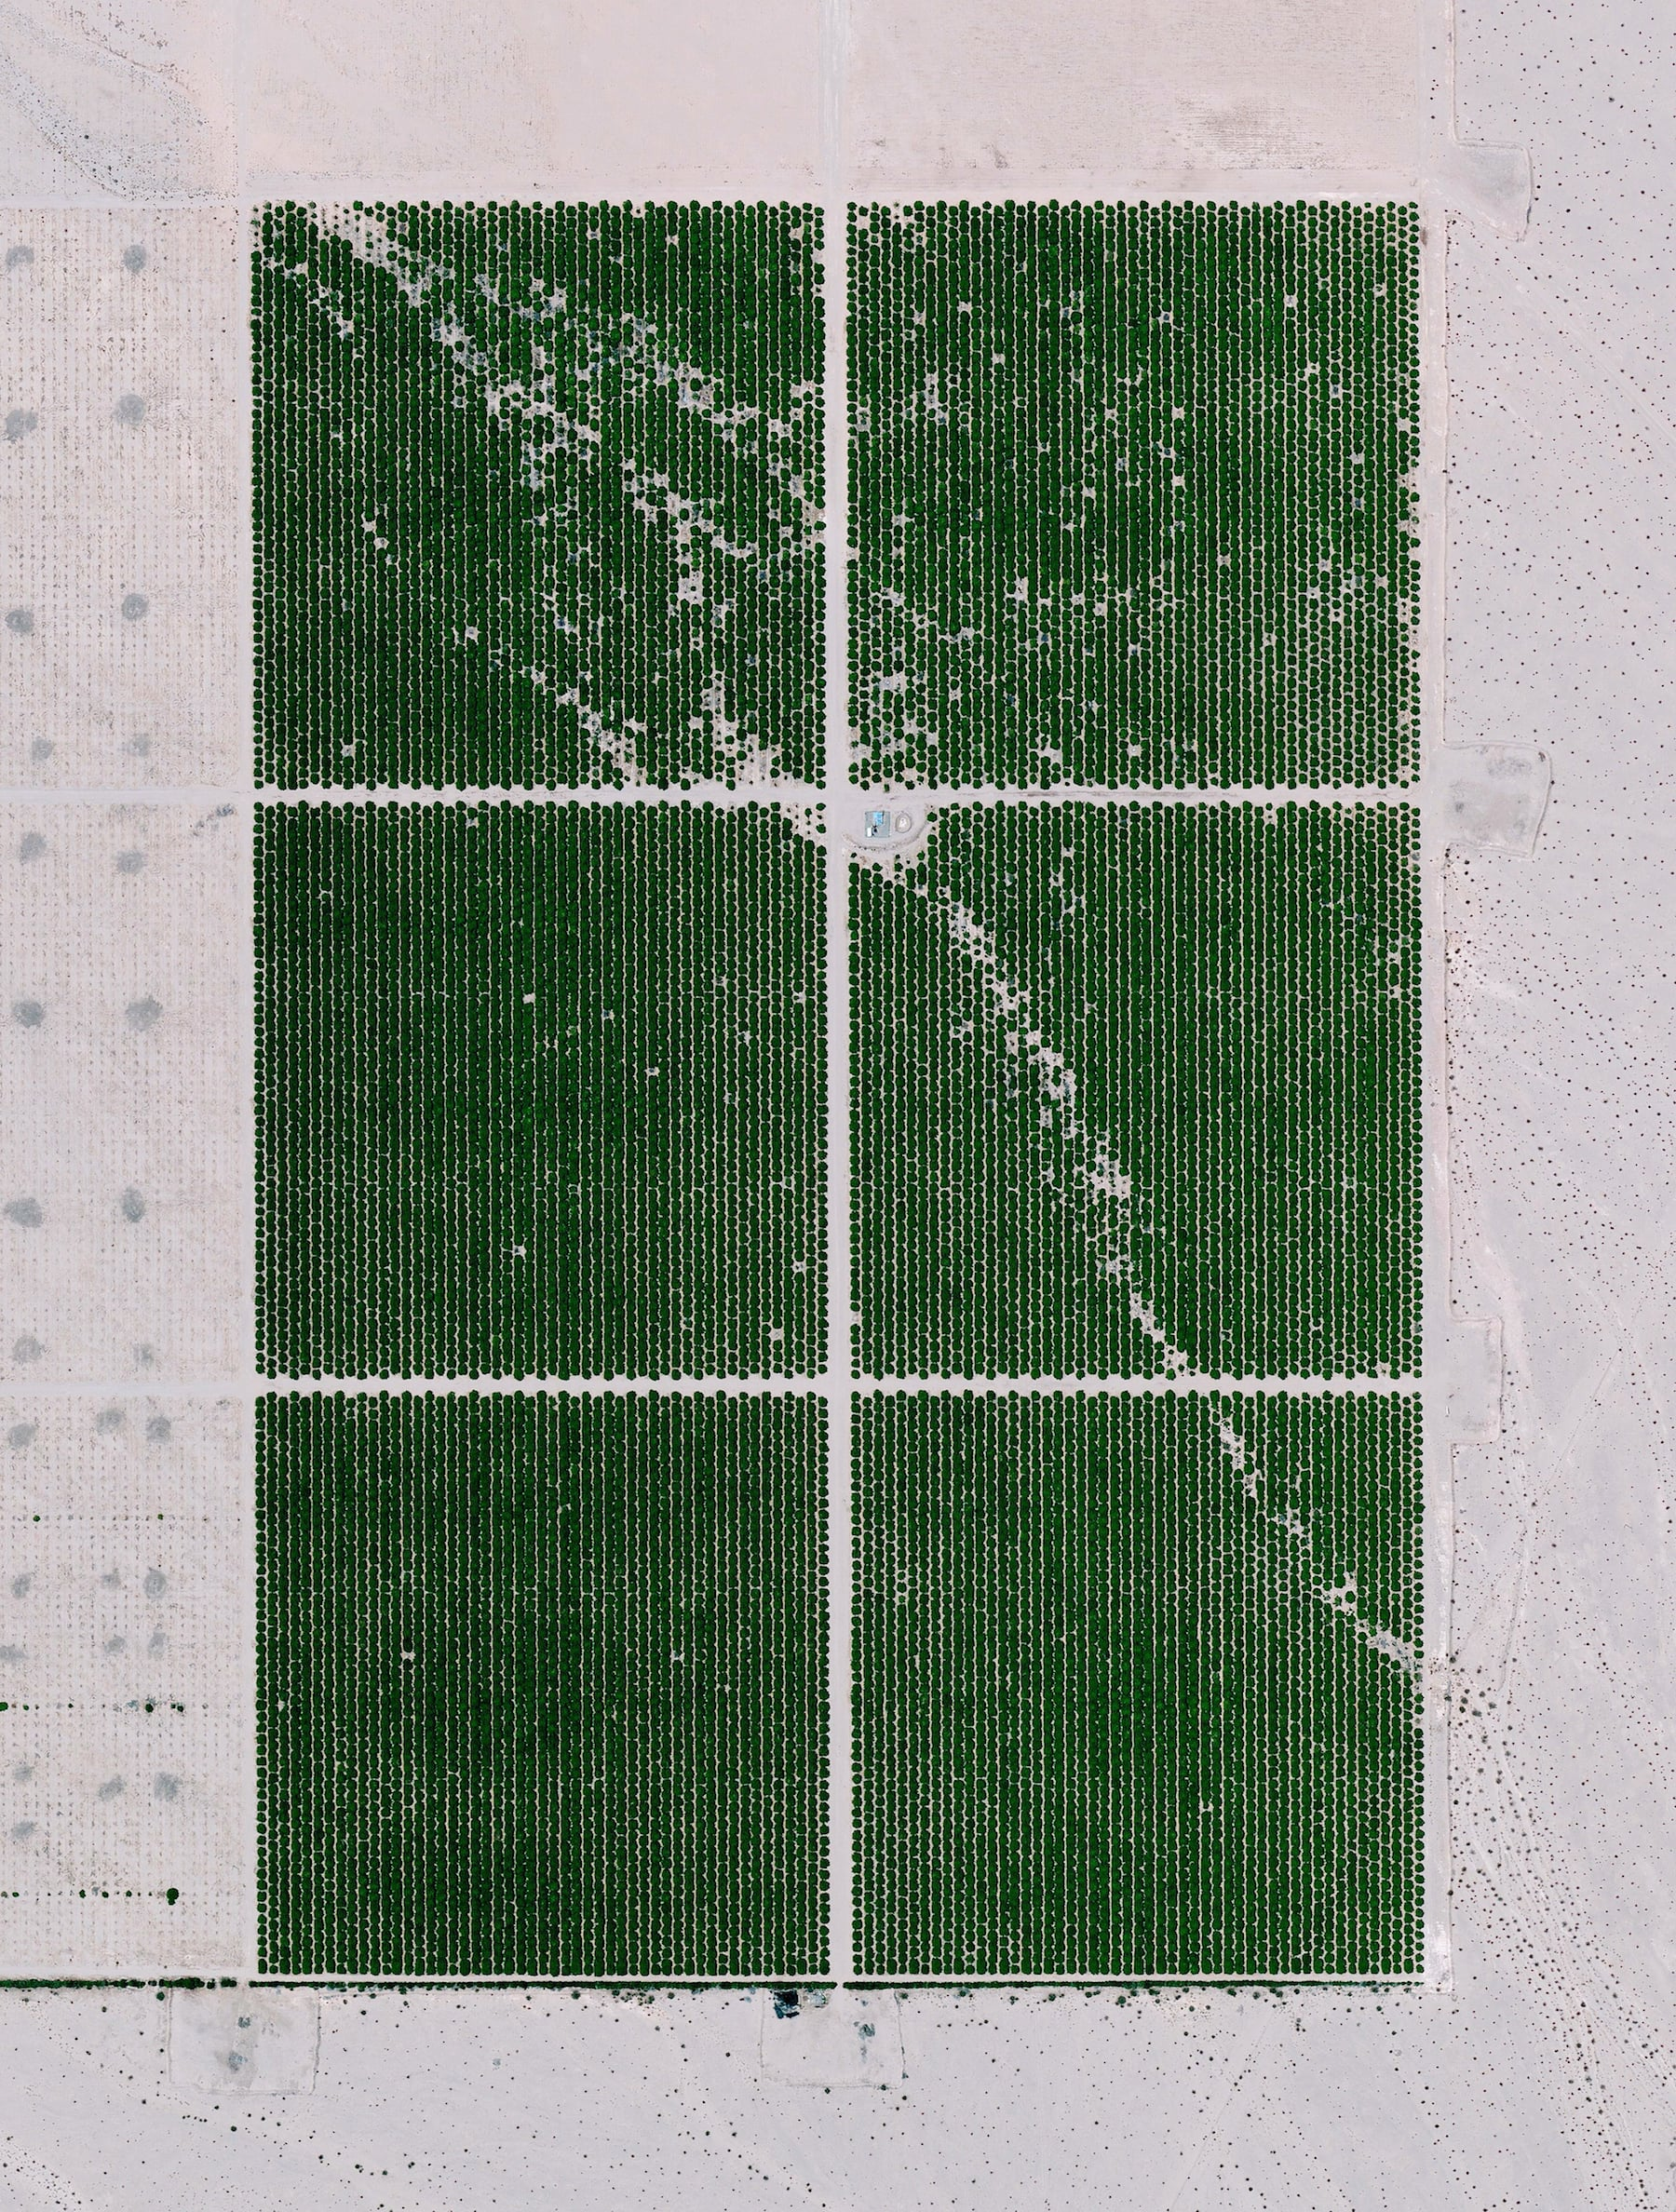 Agriculture in the Mojave Desert, USA